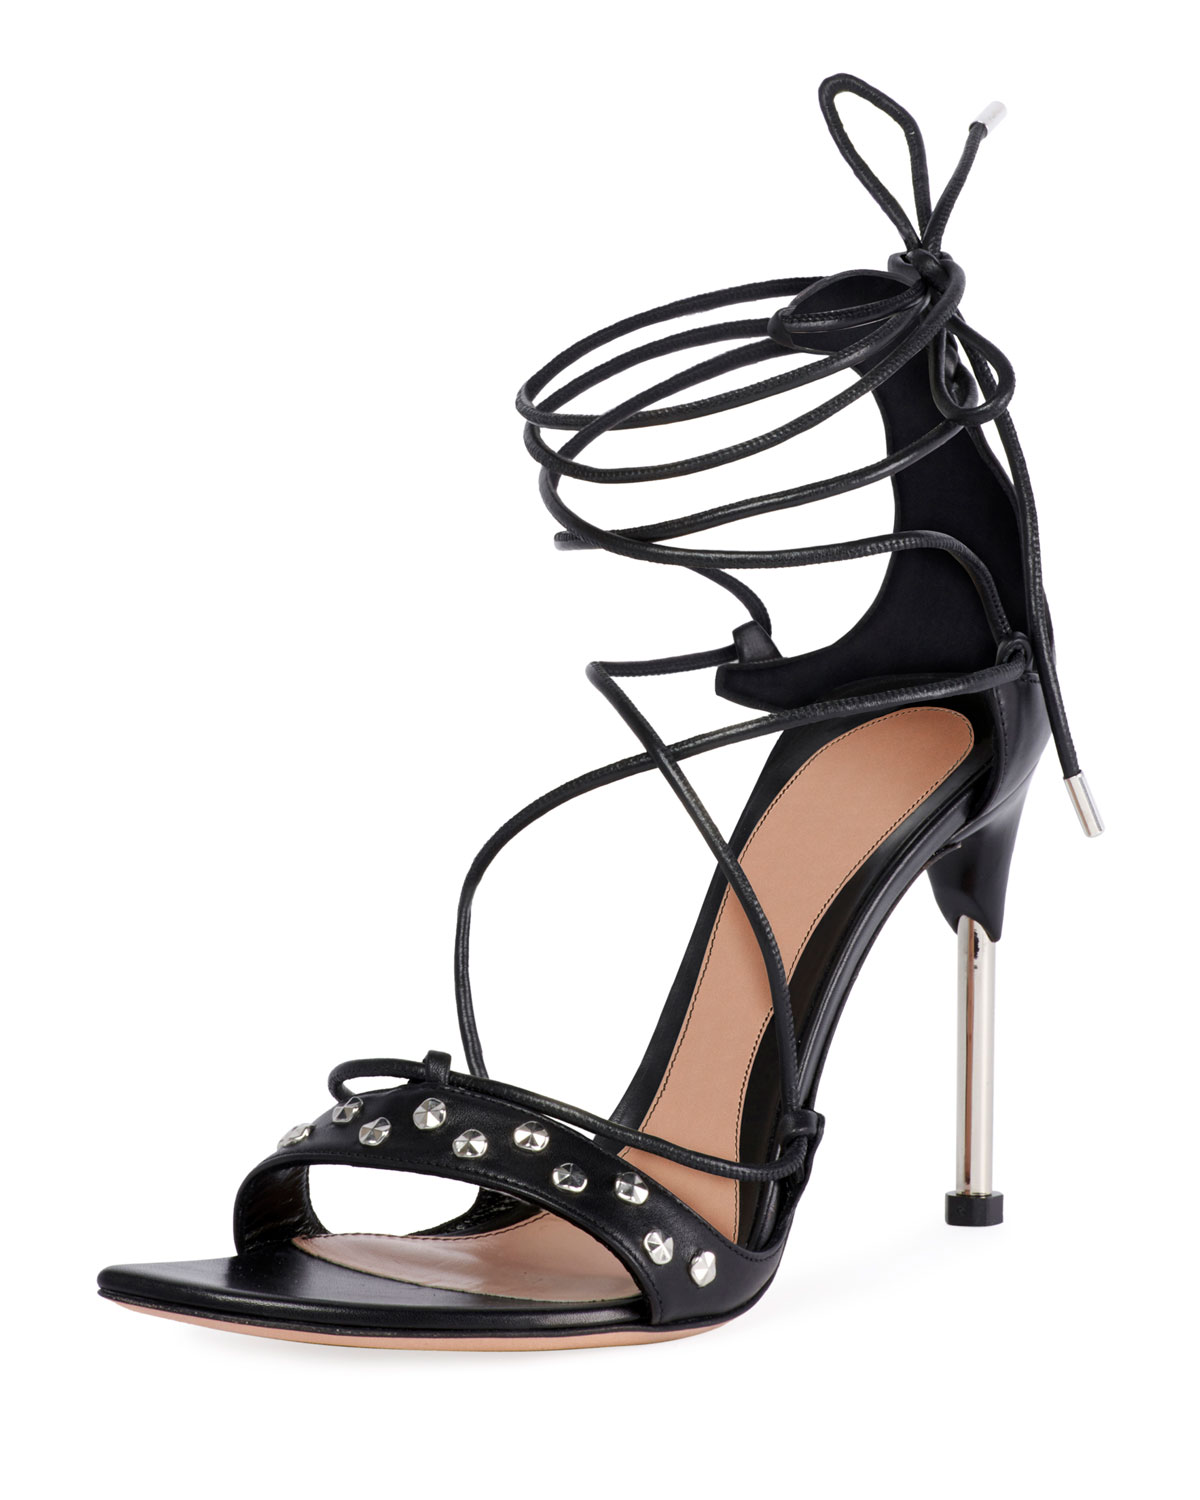 3178dc0be47c Alexander Mcqueen Lace-Up Tie High Sandals In Black Silver